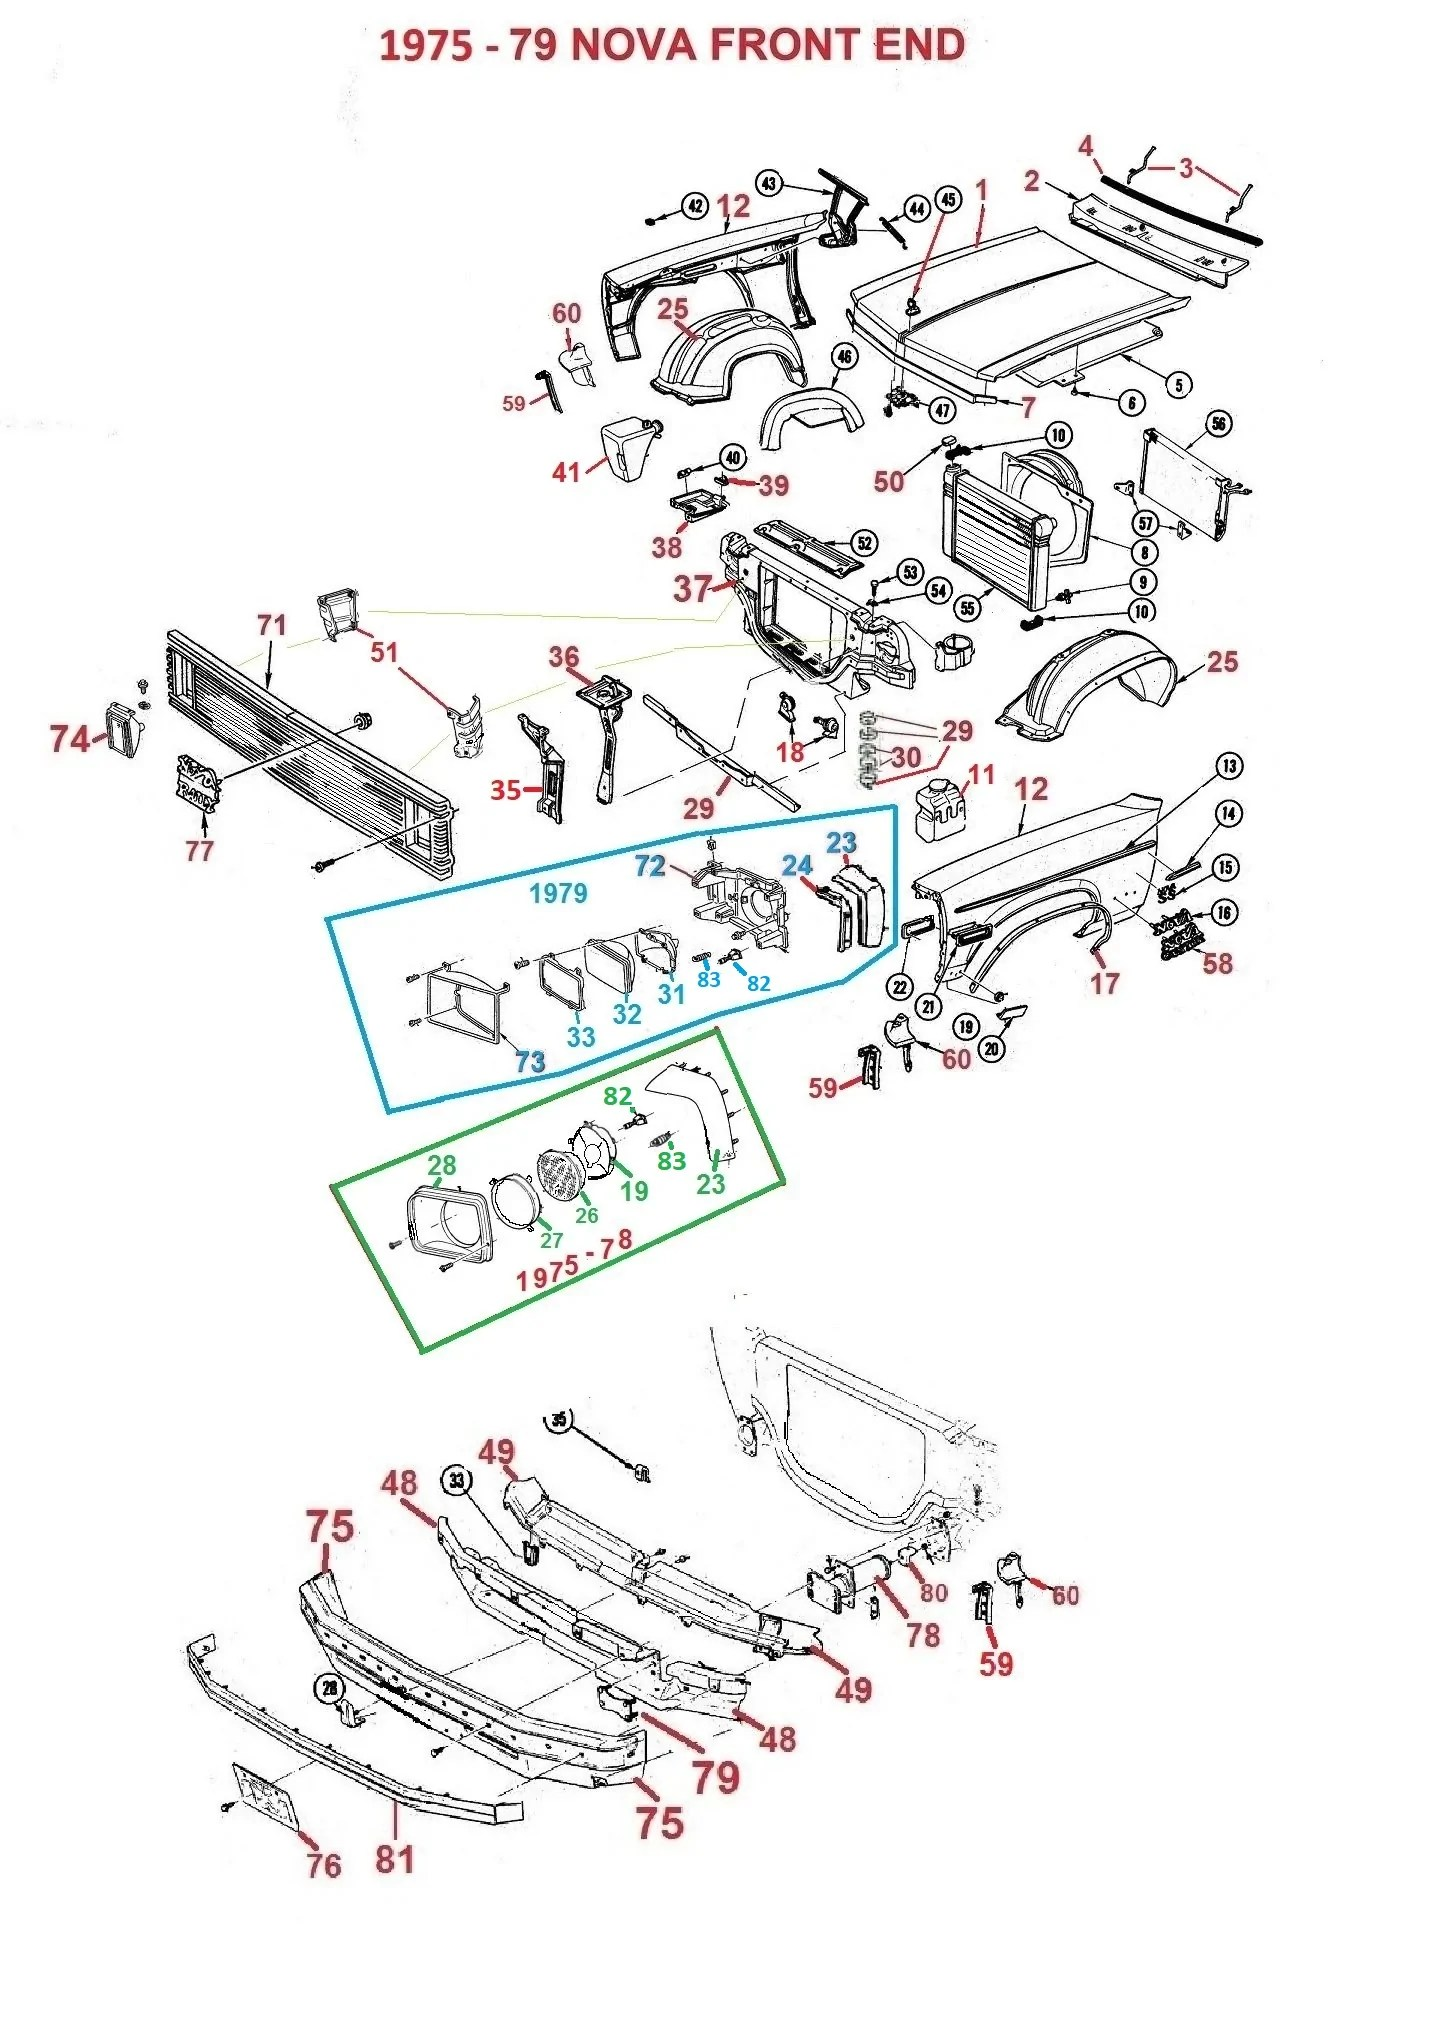 small resolution of  1976 nova wiring diagram 1962 75 79 nova front end parts chicago muscle car parts inc concours